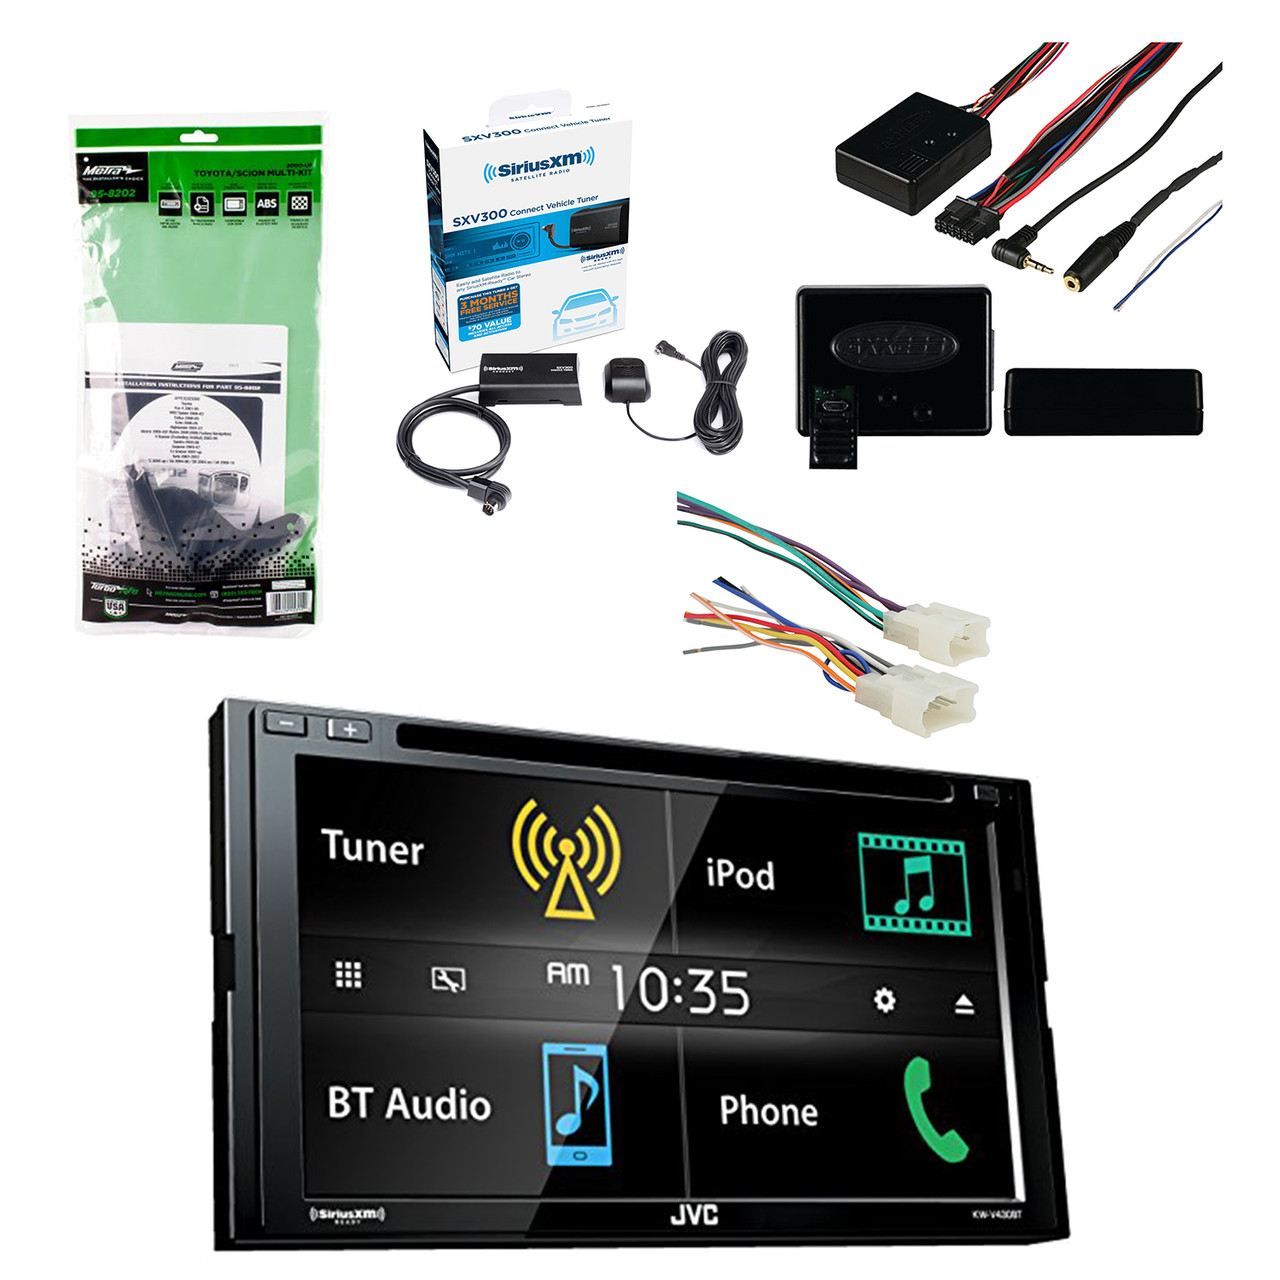 medium resolution of jvc 6 8 inch lcd touchscreen 2 din bluetooth car stereo receiver w siriusxm satellite radio vehicle tuner kit metra multi dash kit radio wiring harness